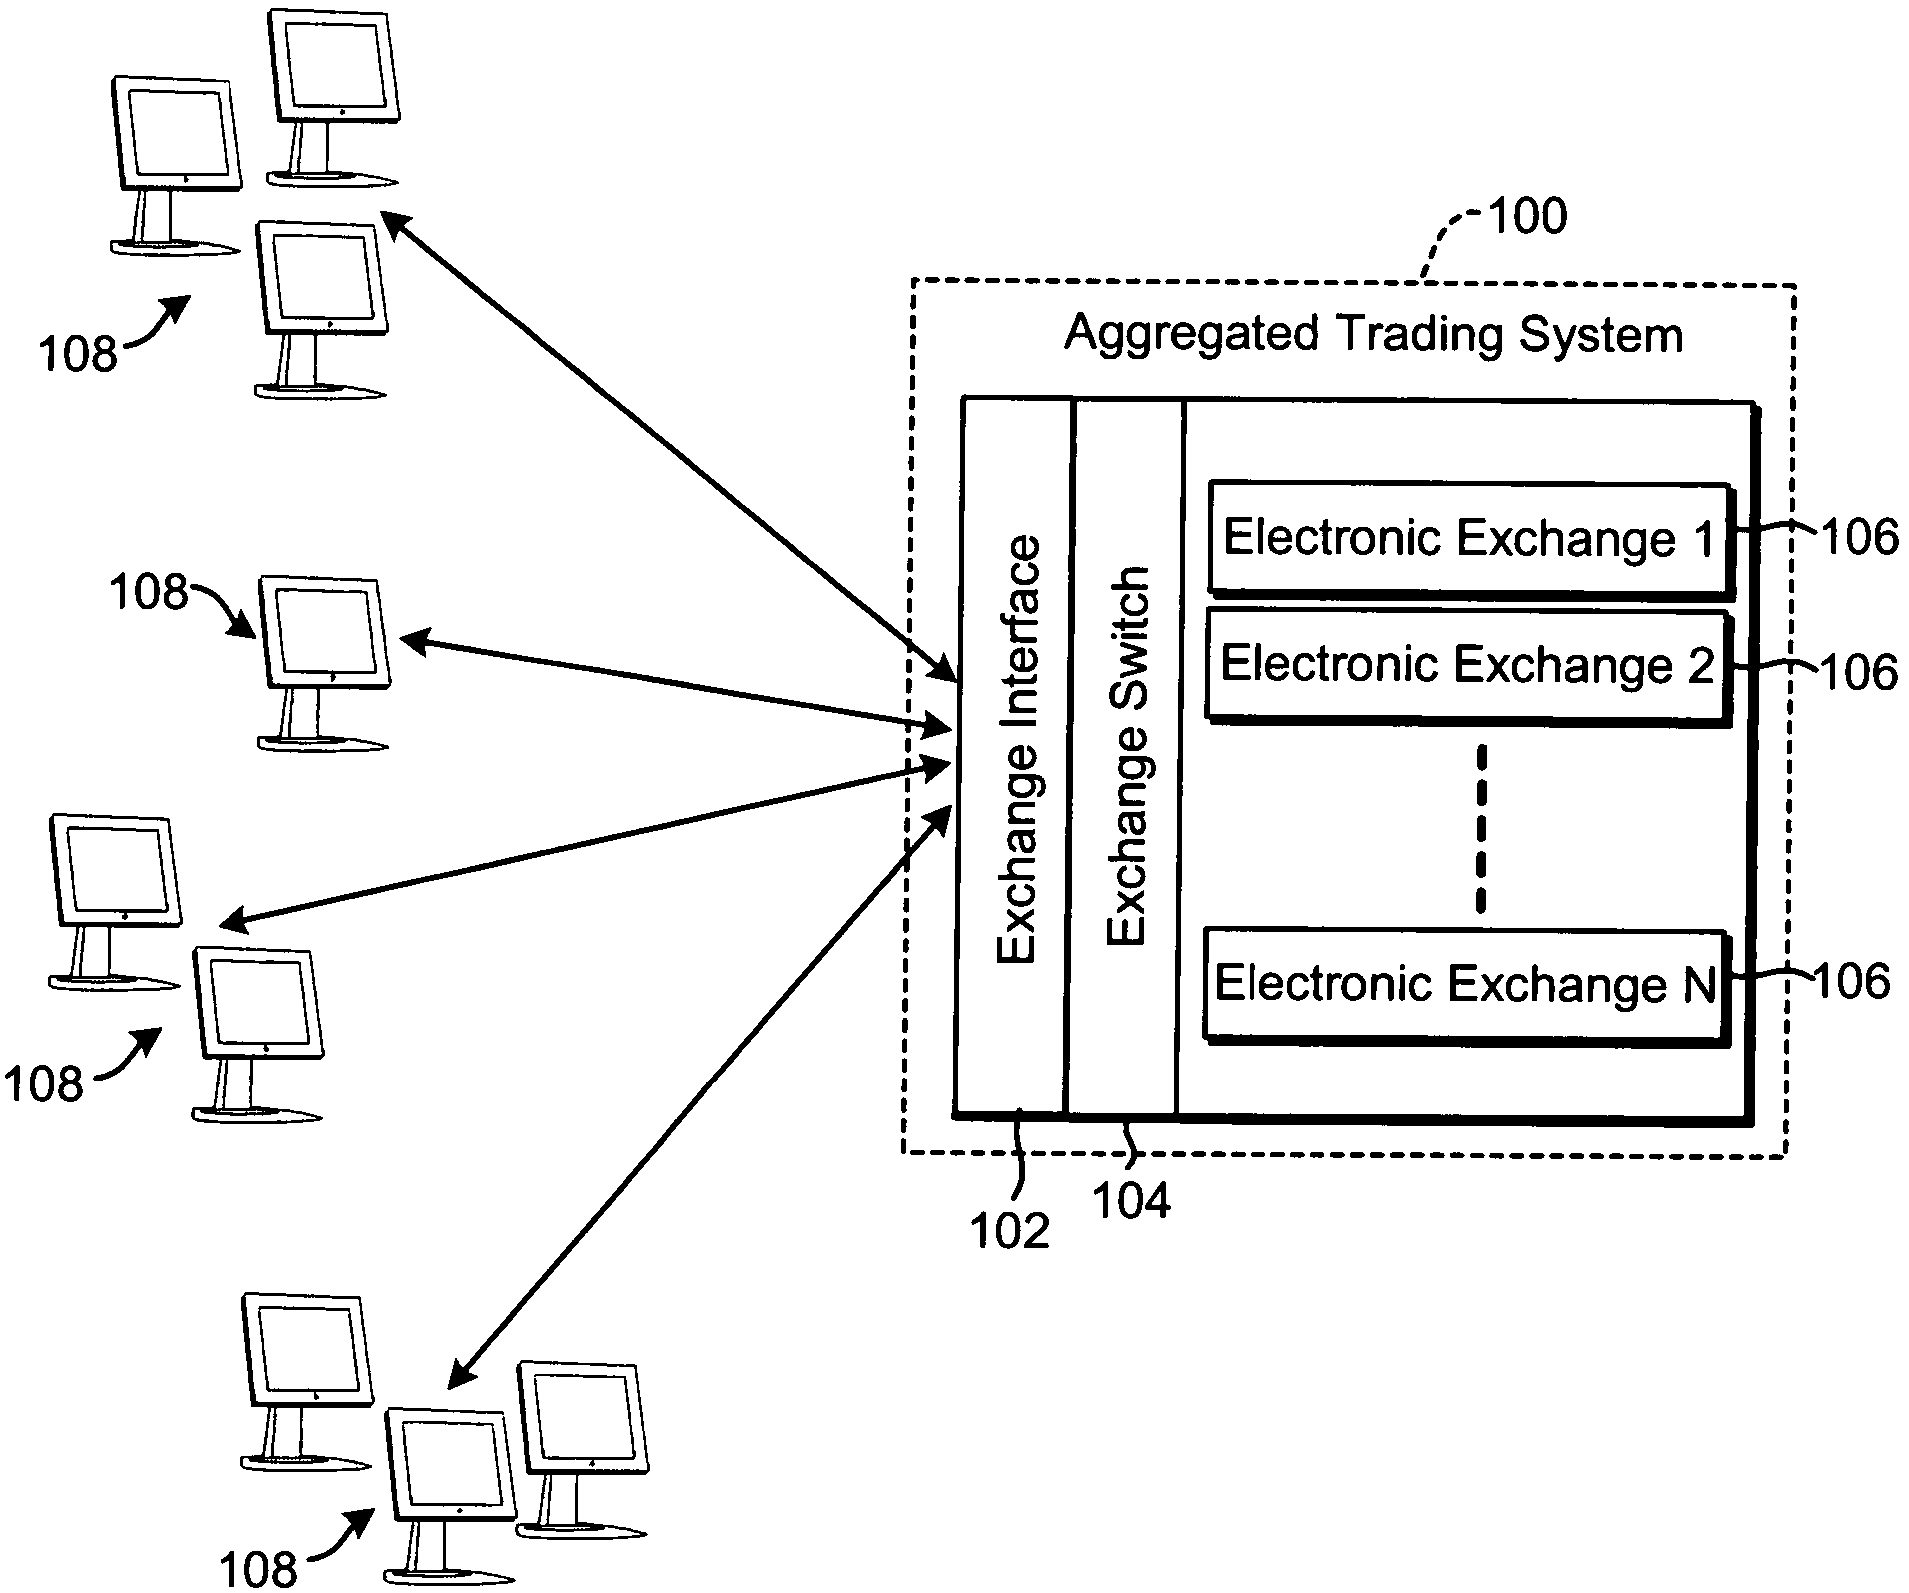 How much is trading system lab